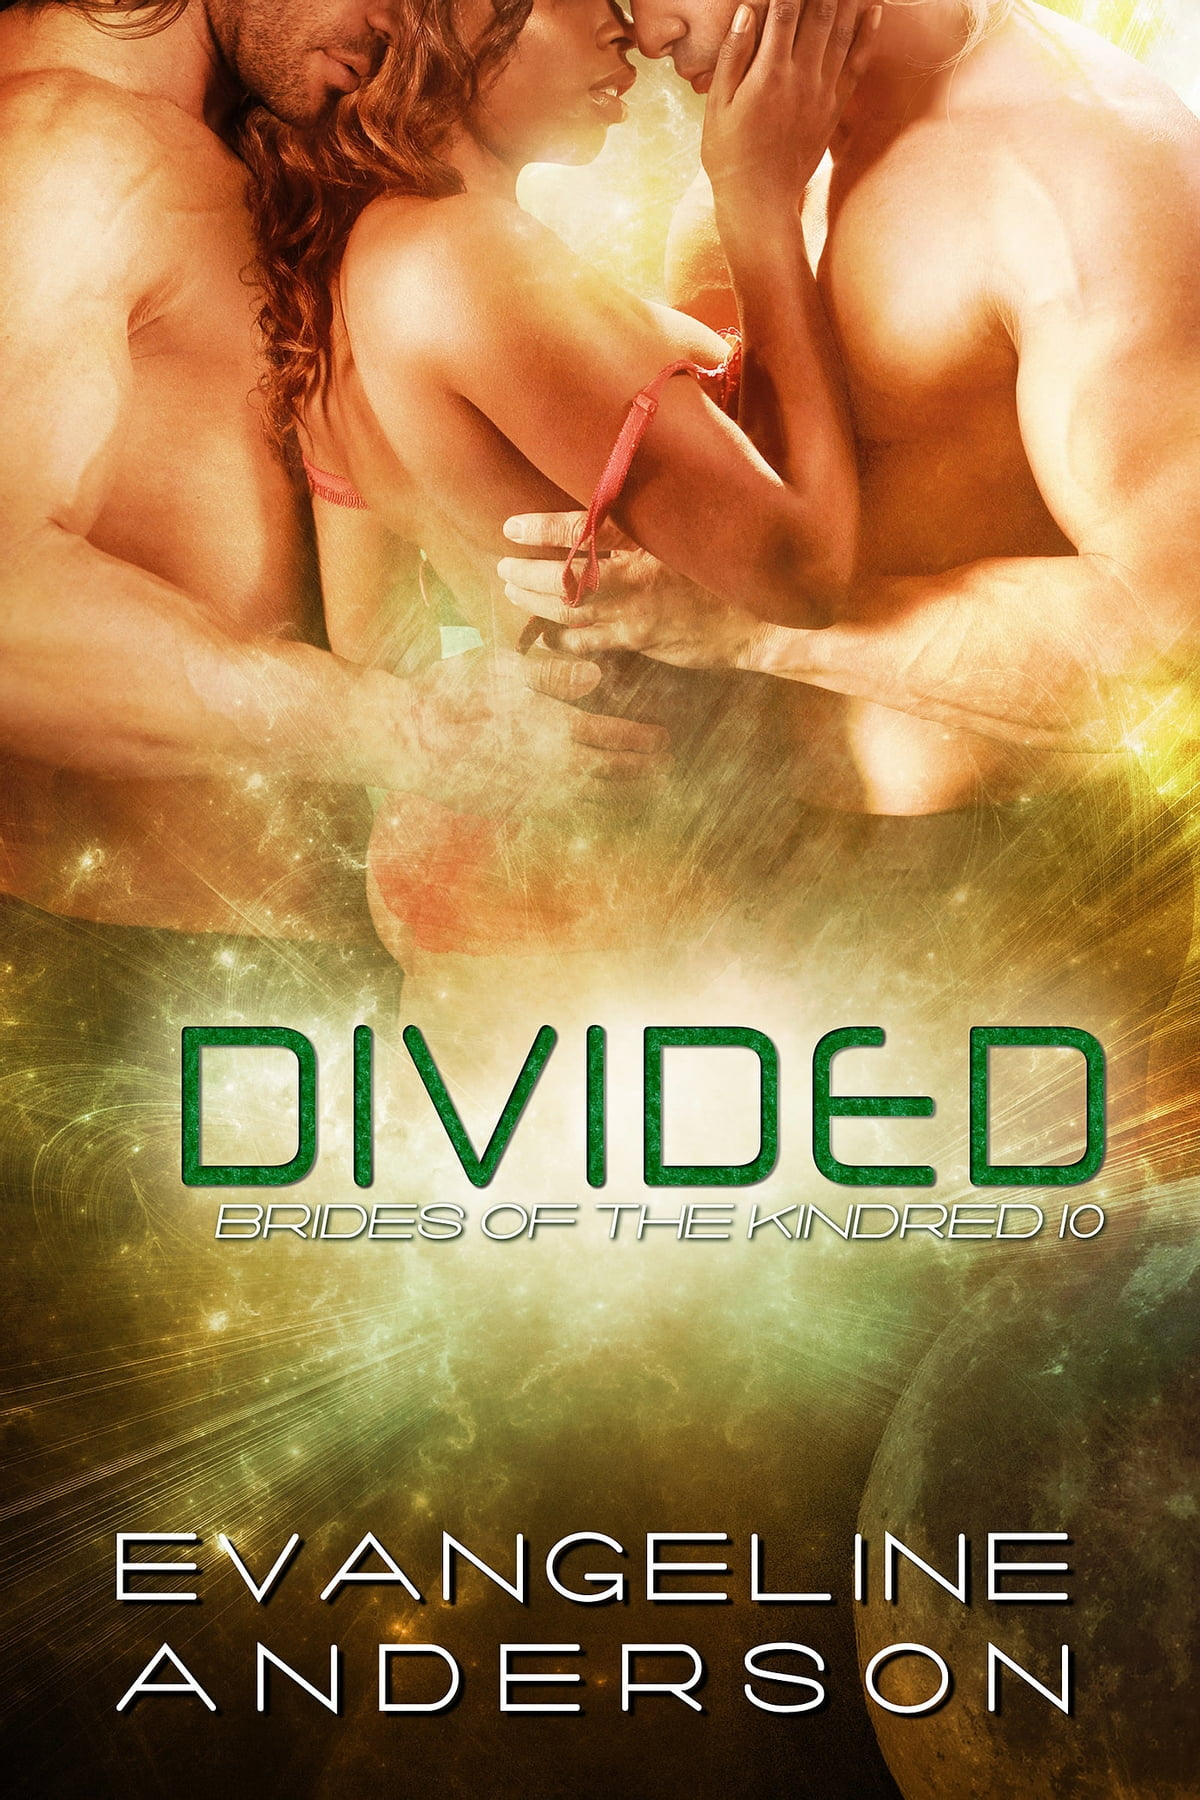 brides of the kindred book 8